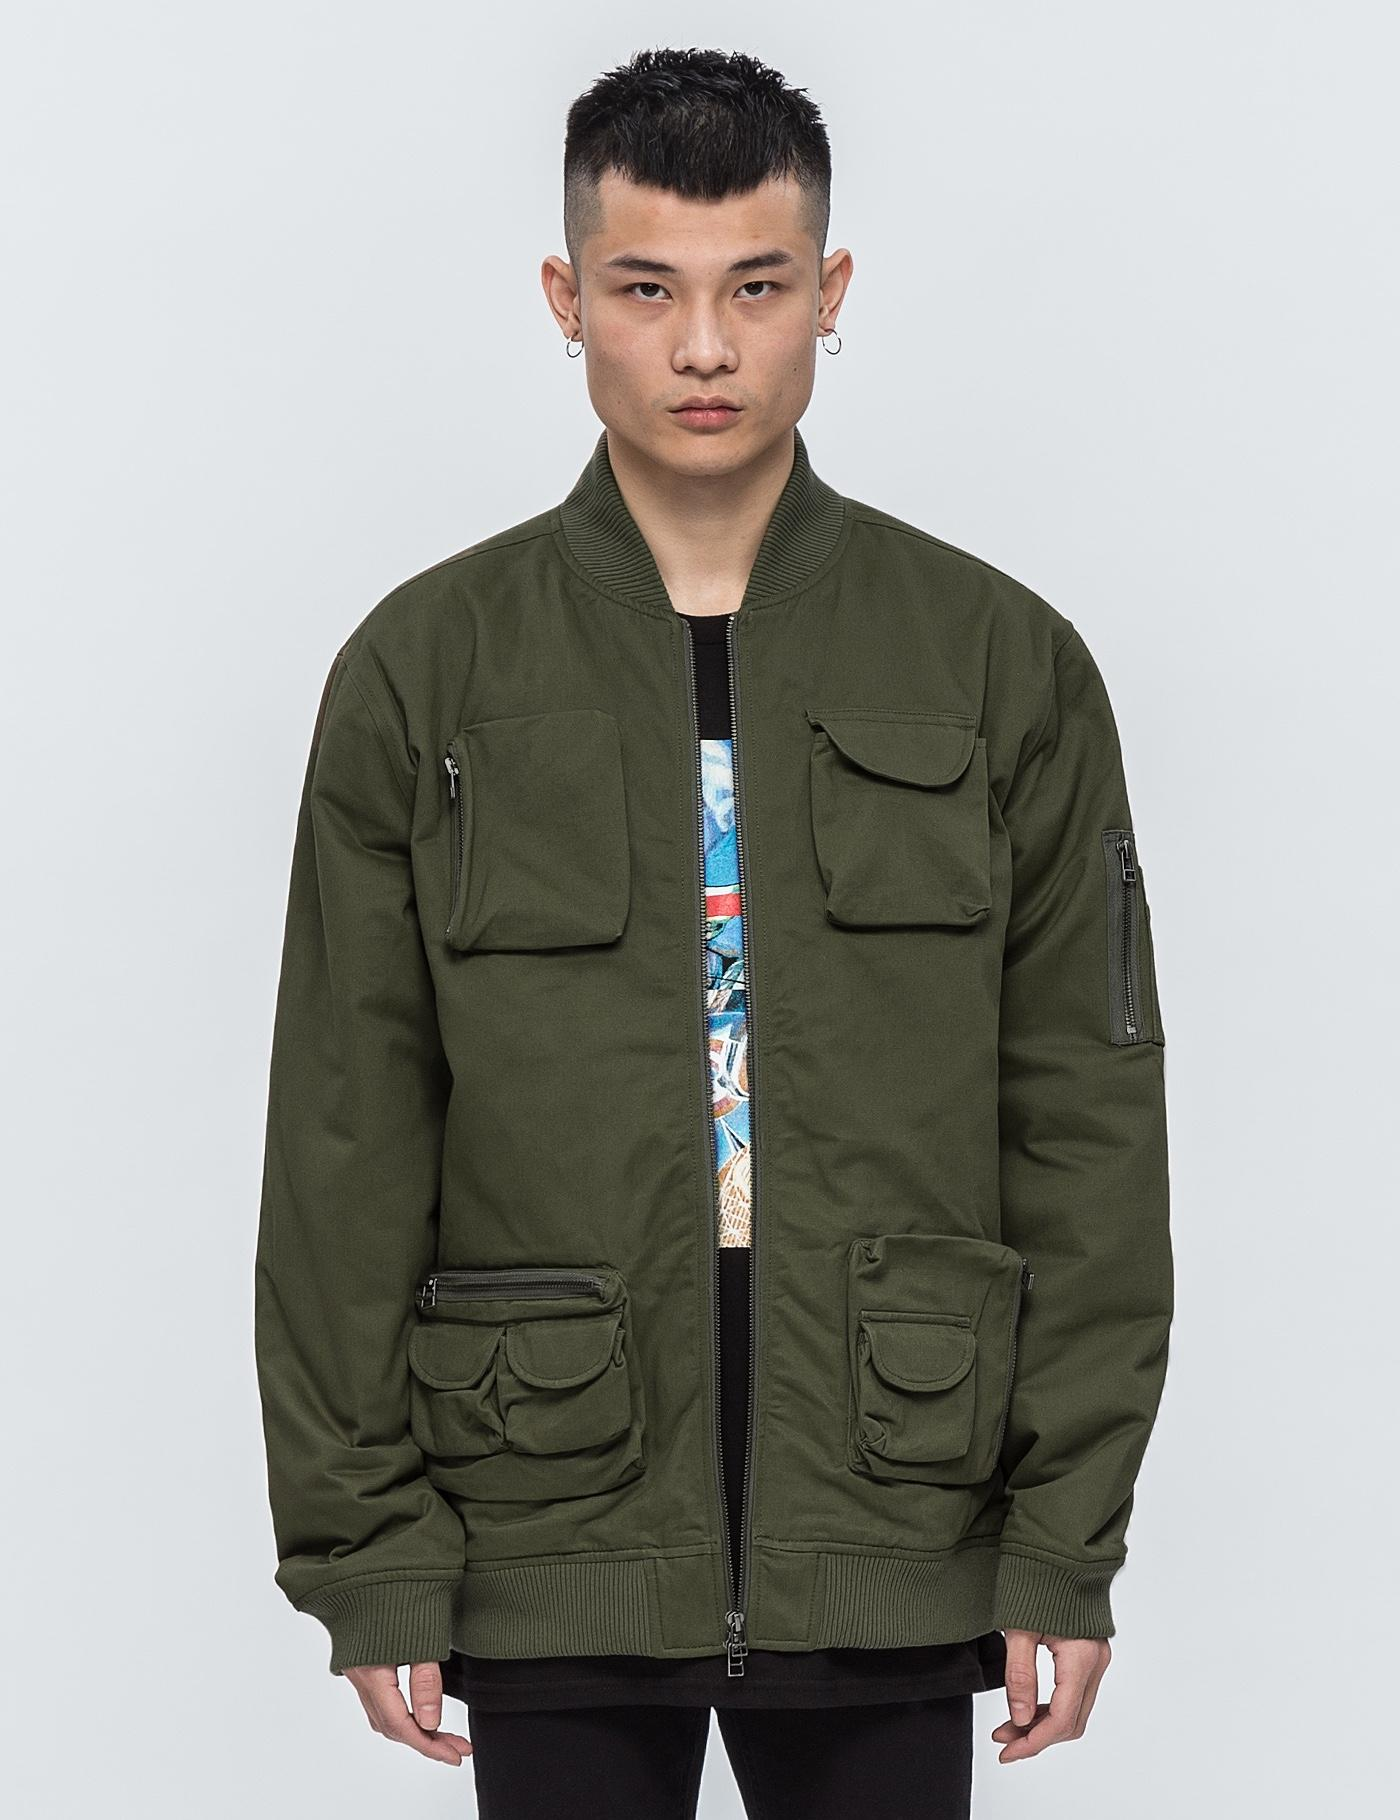 Dc Hbx Lyst Black Scale Utility Ma1 Jacket In Green For Men